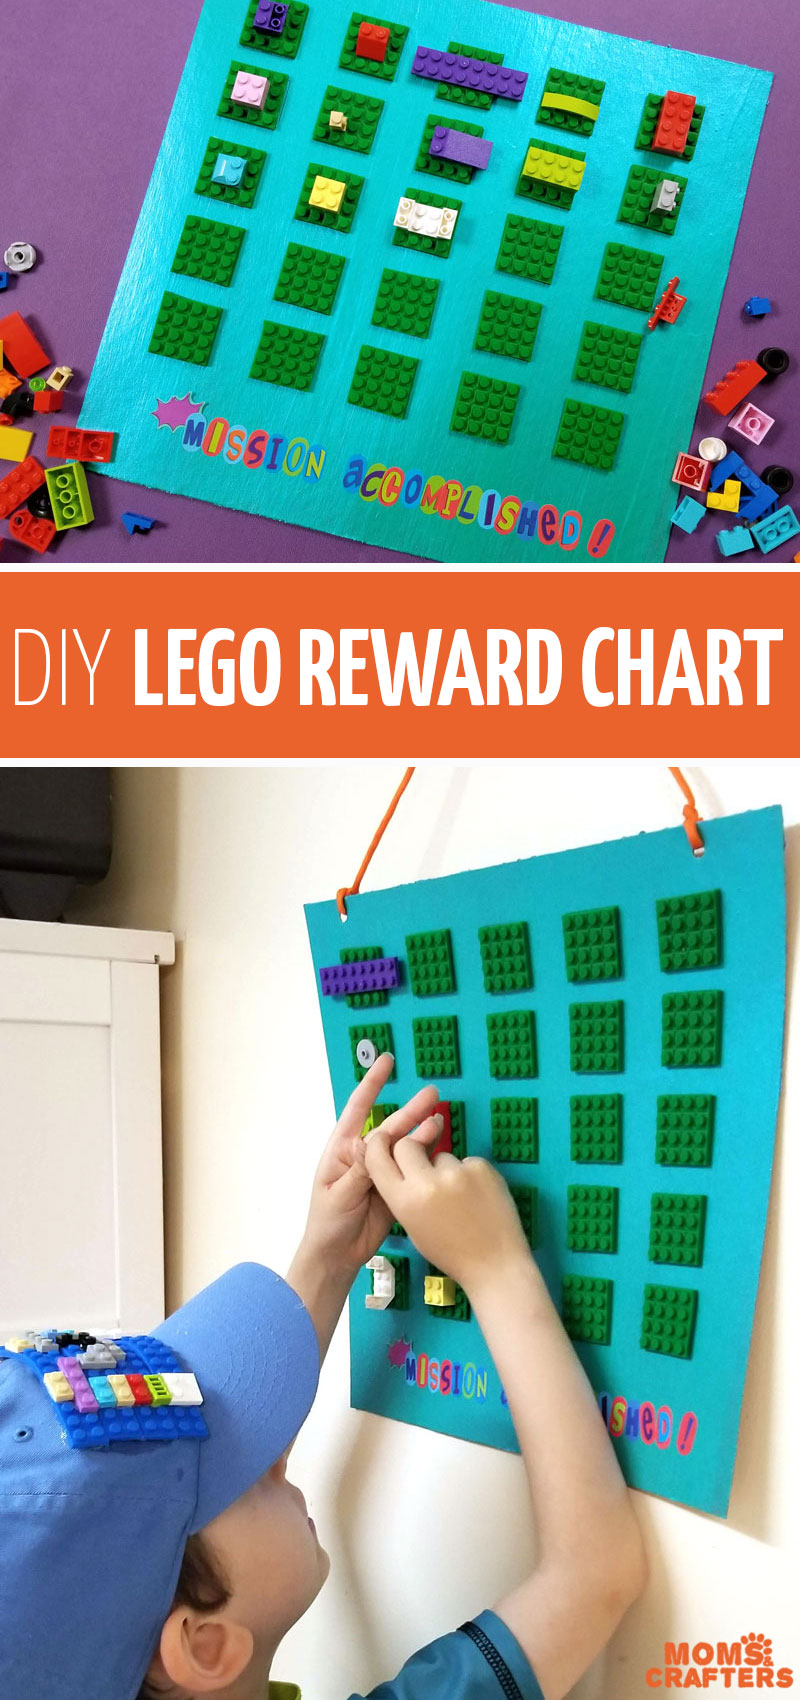 Click to learn how to make your own DIY reward chart for kids using brick tape! This LEGO rewards chart is the perfect incentive for boys and girls who love LEGO and want to earn some for their collection! #lego #diy #craftymom